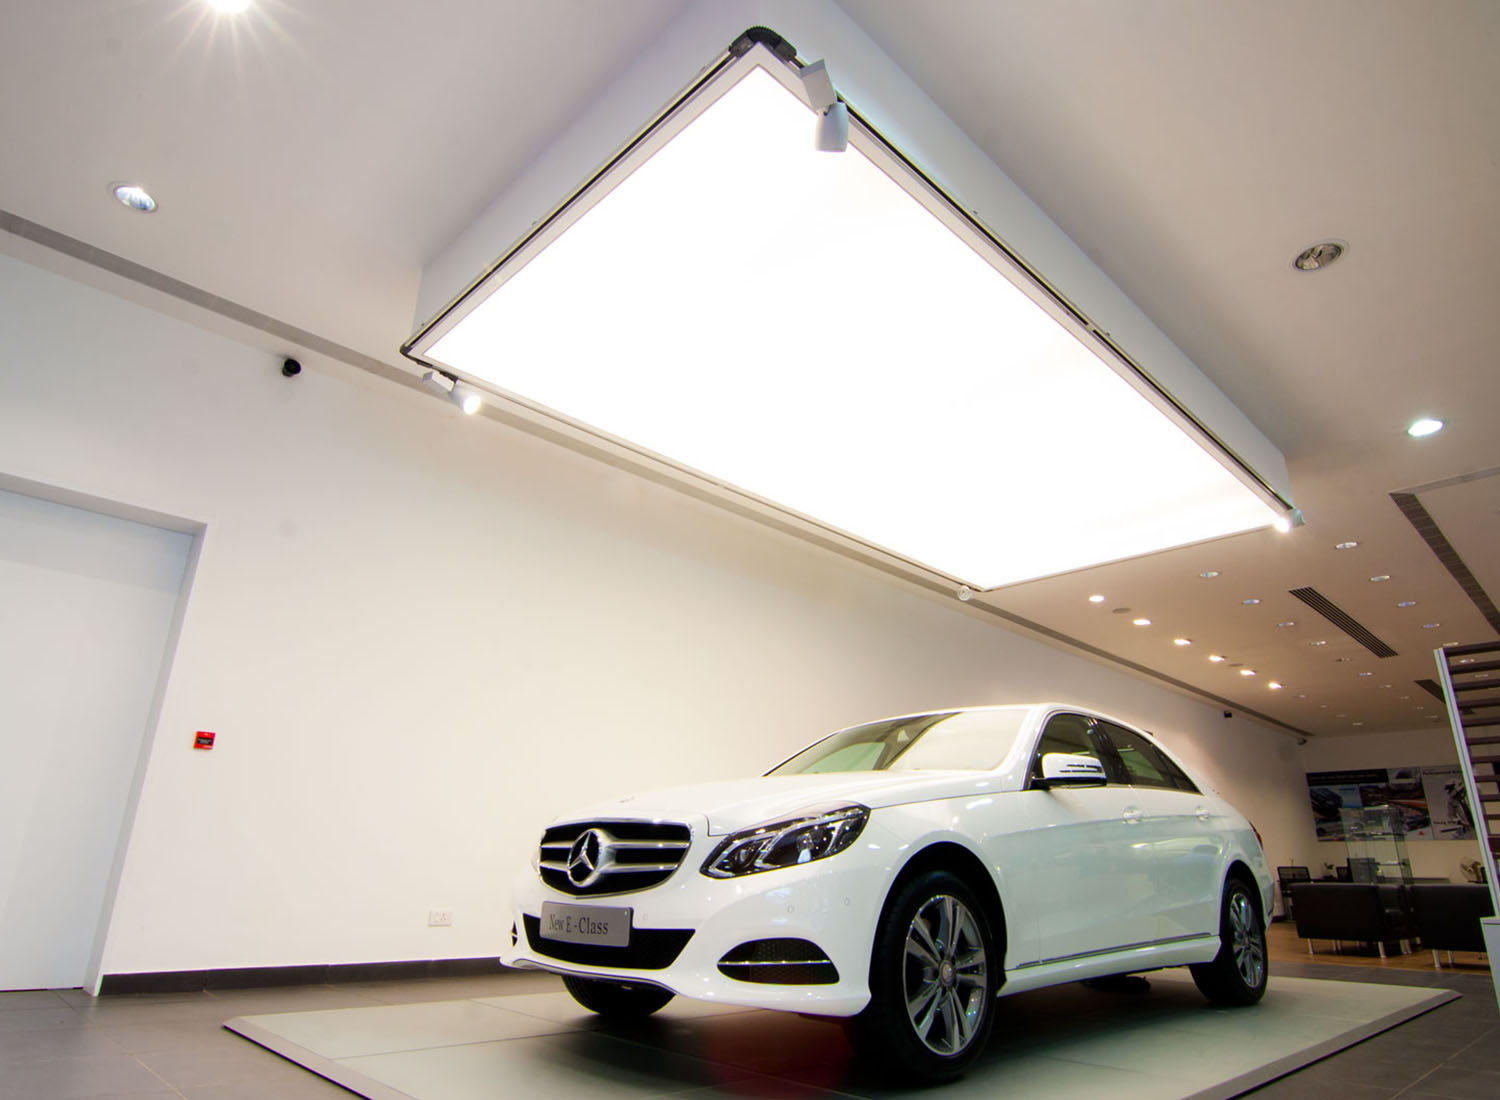 Benz - Stretch Ceiling  Translucent with Backlighting in Showroom - Showroom